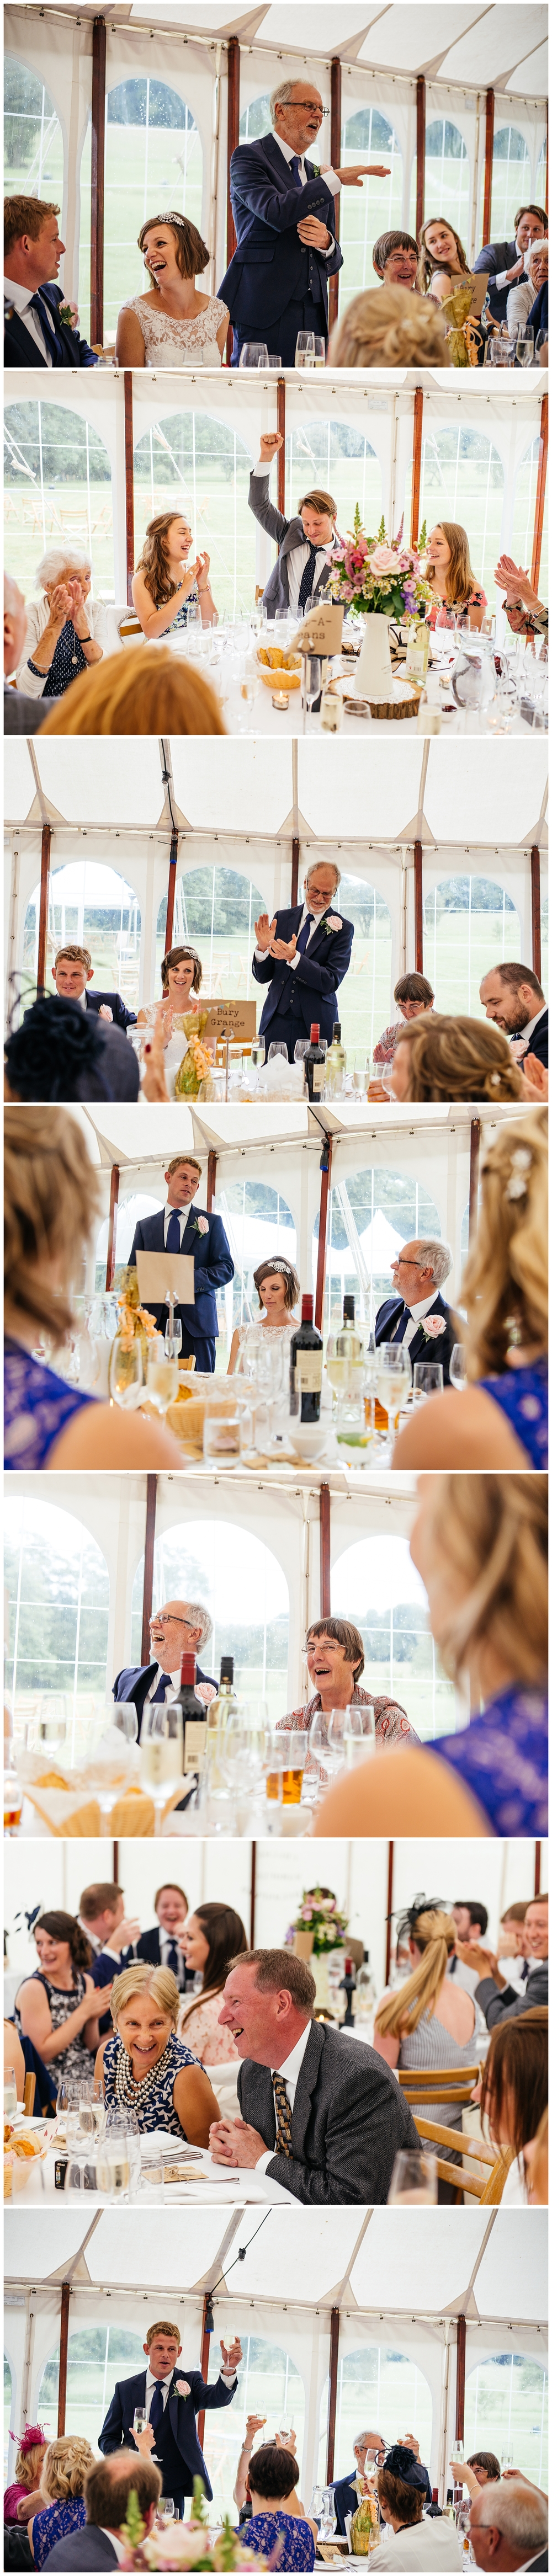 Nikki_Cooper_Photography_Emma&Owen_Wedding_Photos_Hertfordshire_1165.jpg